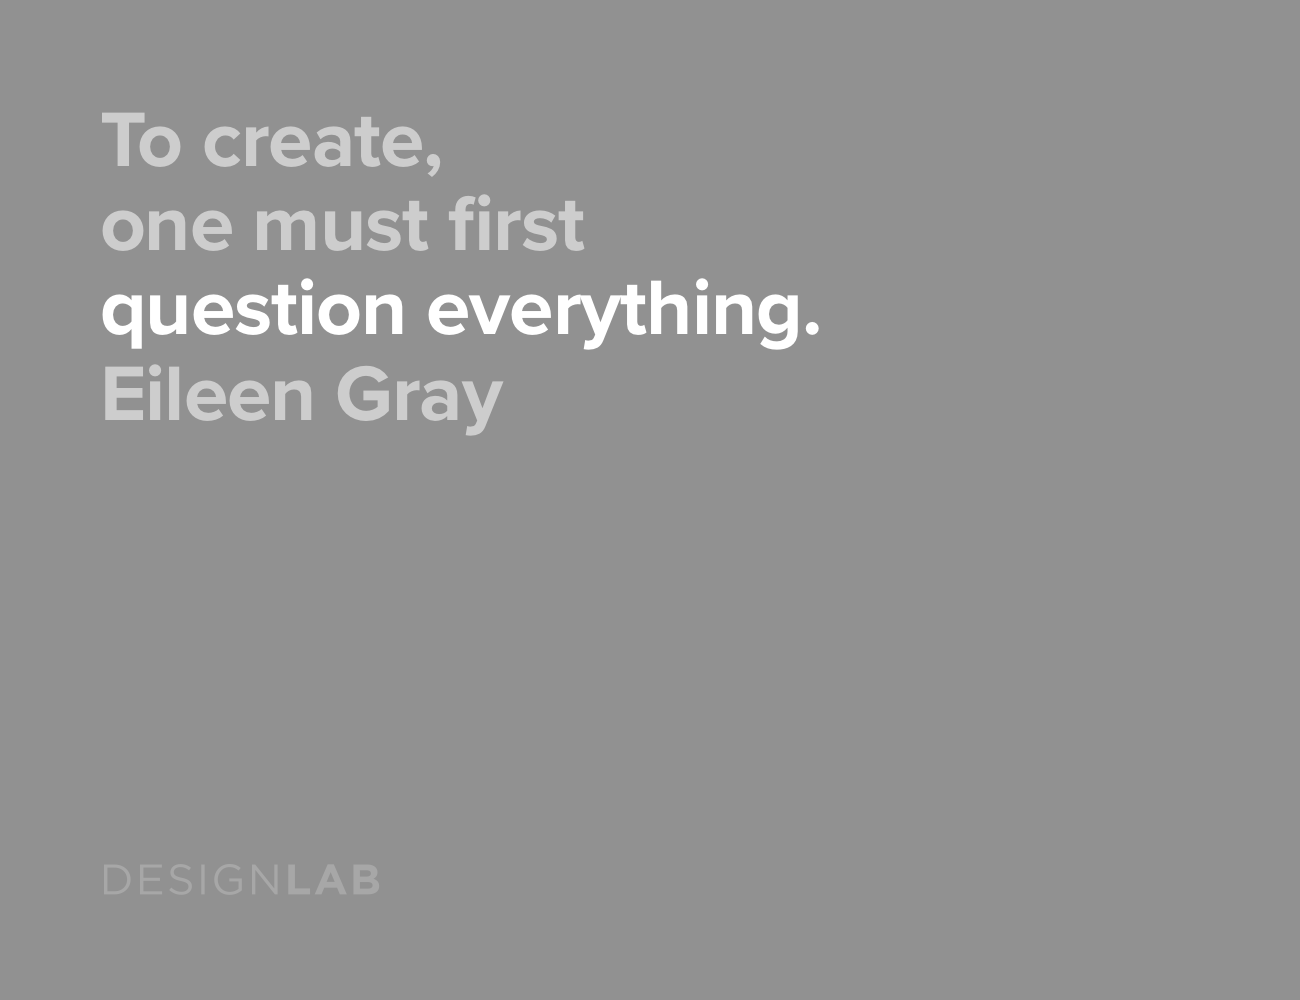 To create, one must first question everything. Eileen Gray